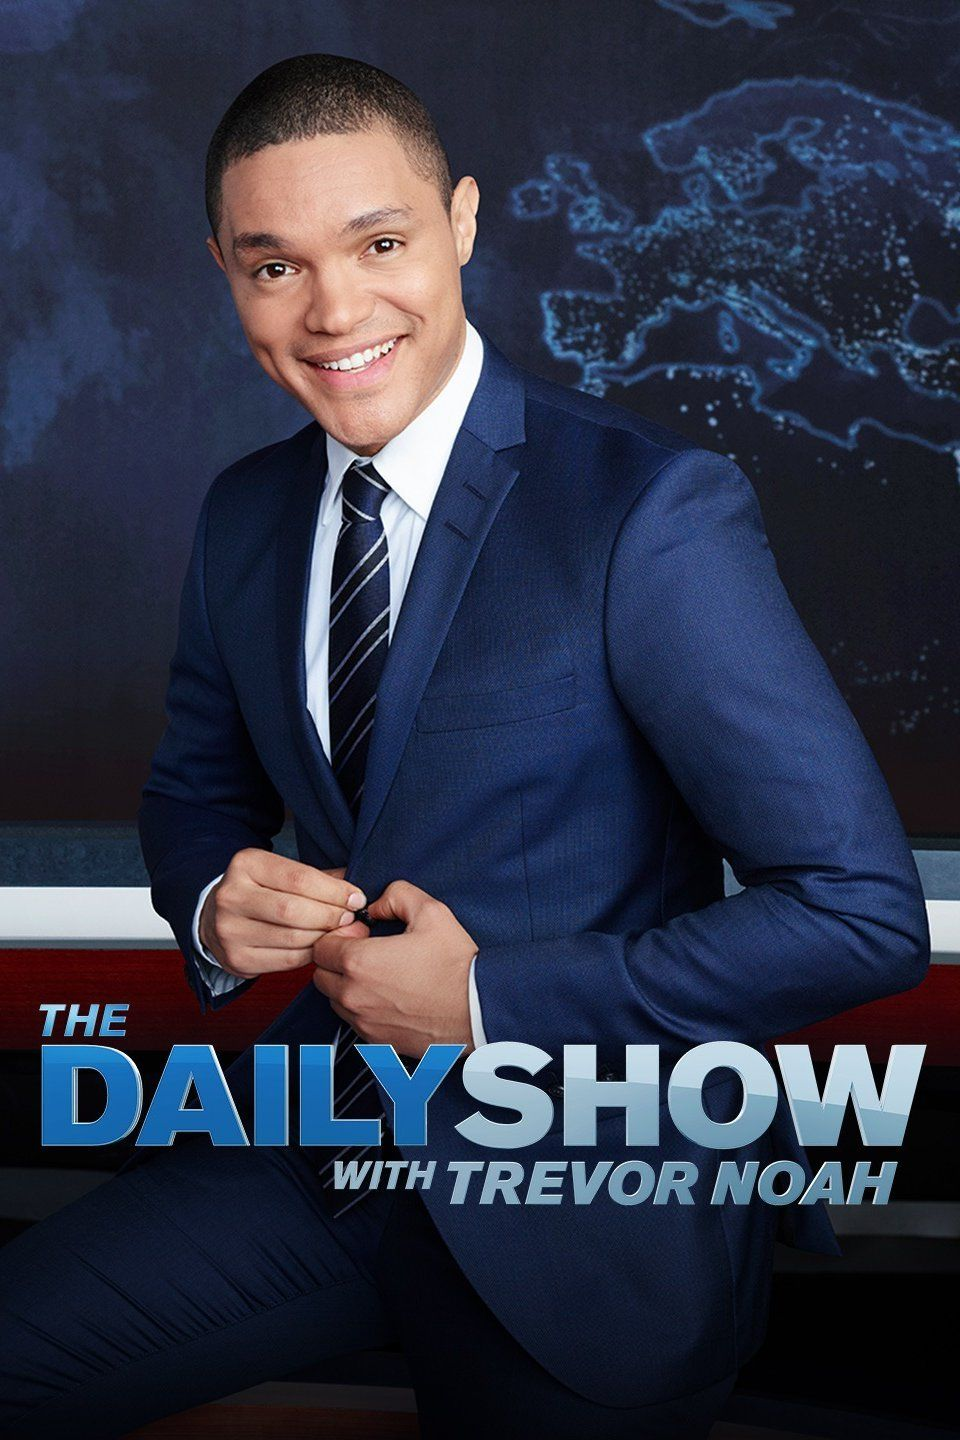 The Daily Show with Trevor Noah cover